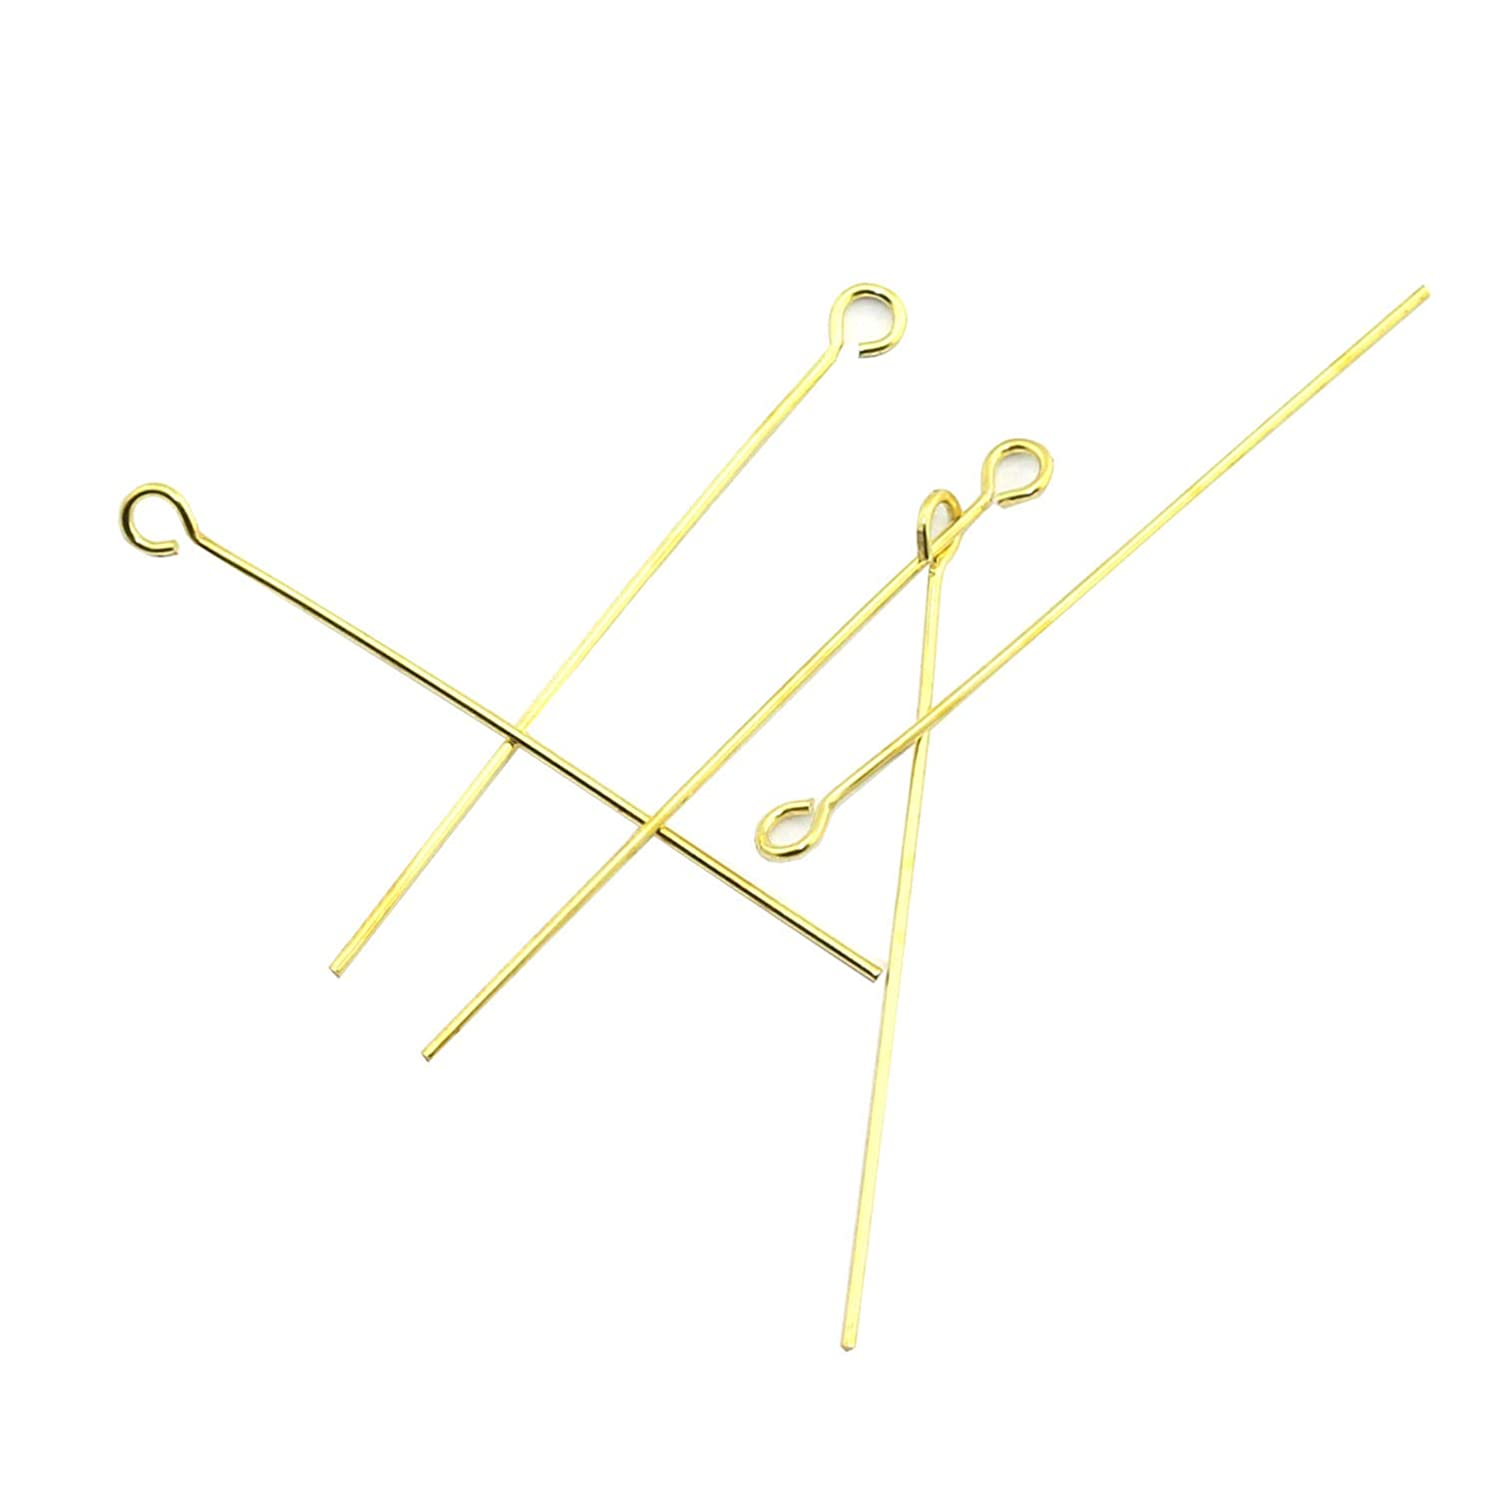 NX Garden 100pcs Gold Eyepins for Jewelry Making Electroplate Copper Metal Jewelry DIY Fittings Head Pins 40mm